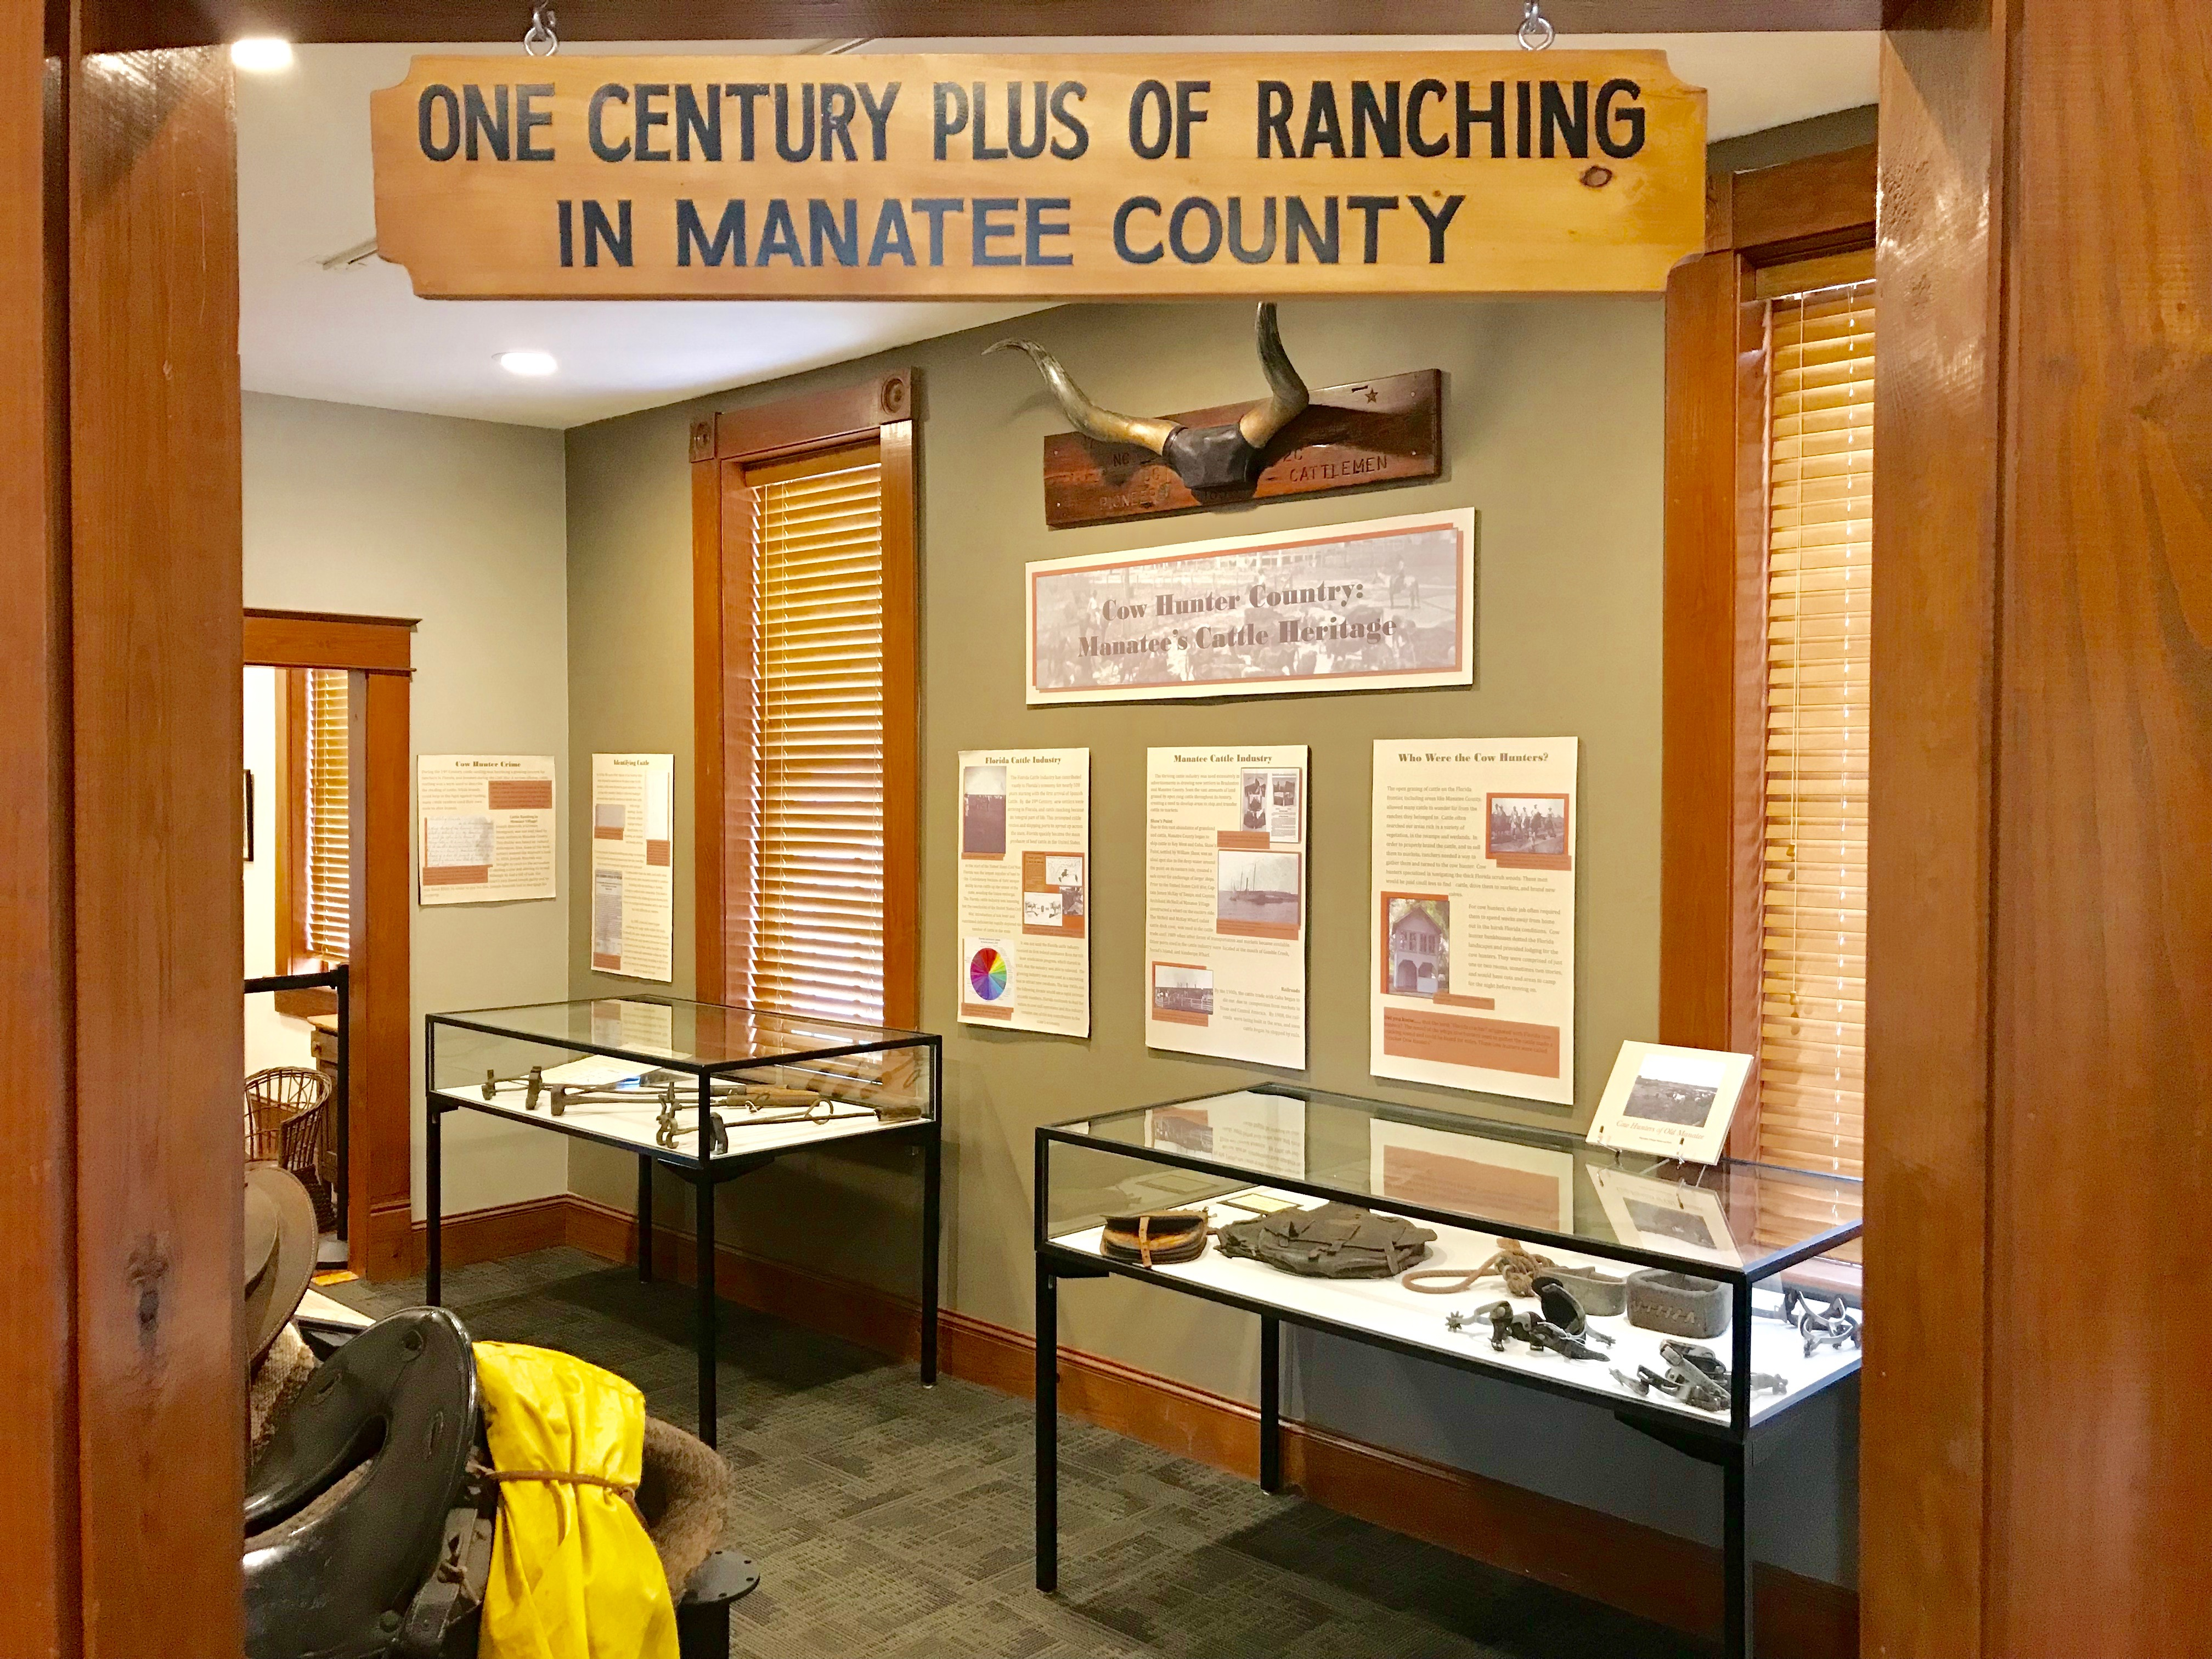 Manatee County's Cattle Industry Exhibit